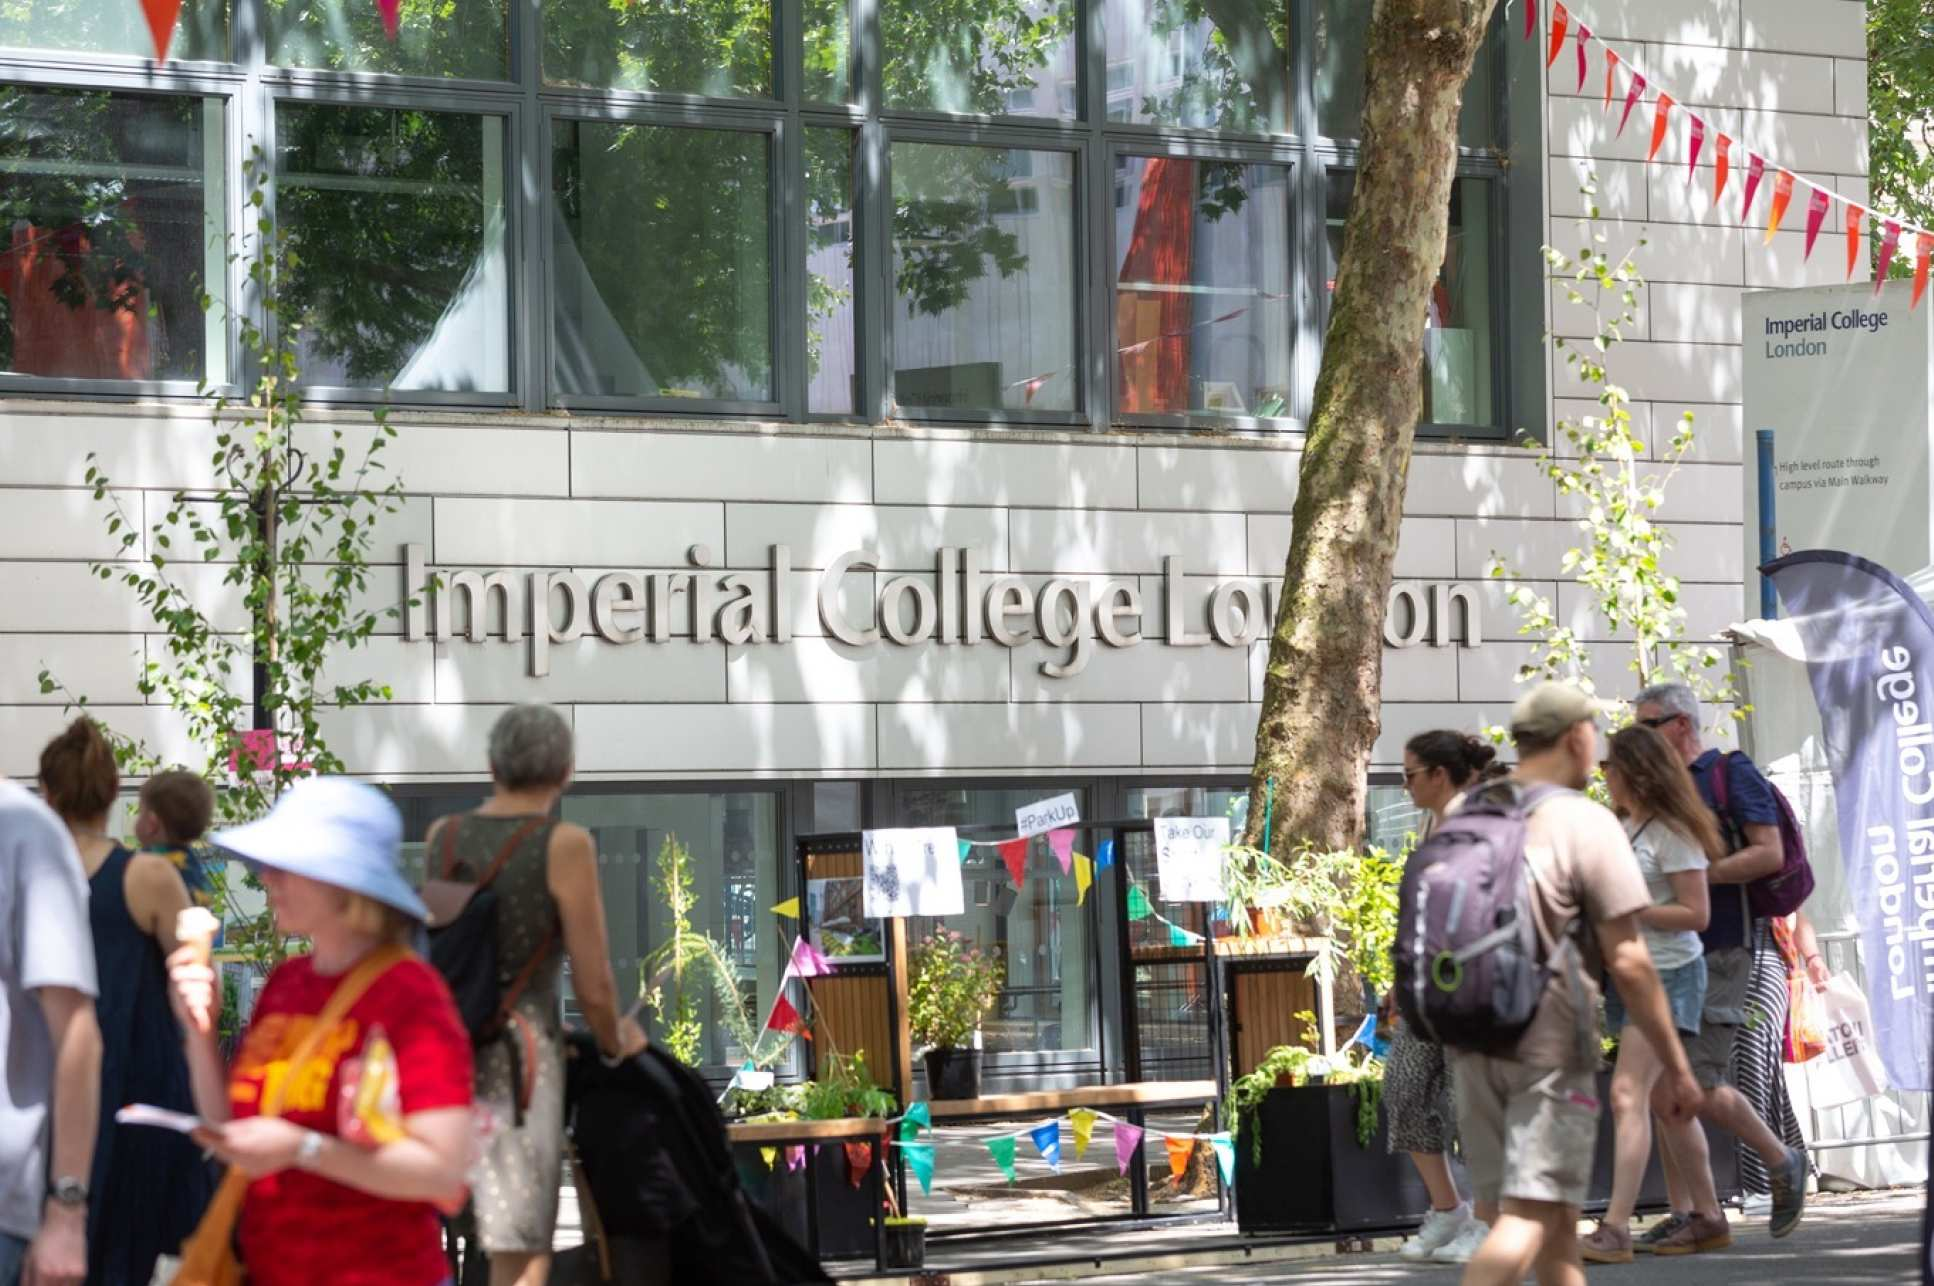 Great Exhibition Road Festival at Imperial